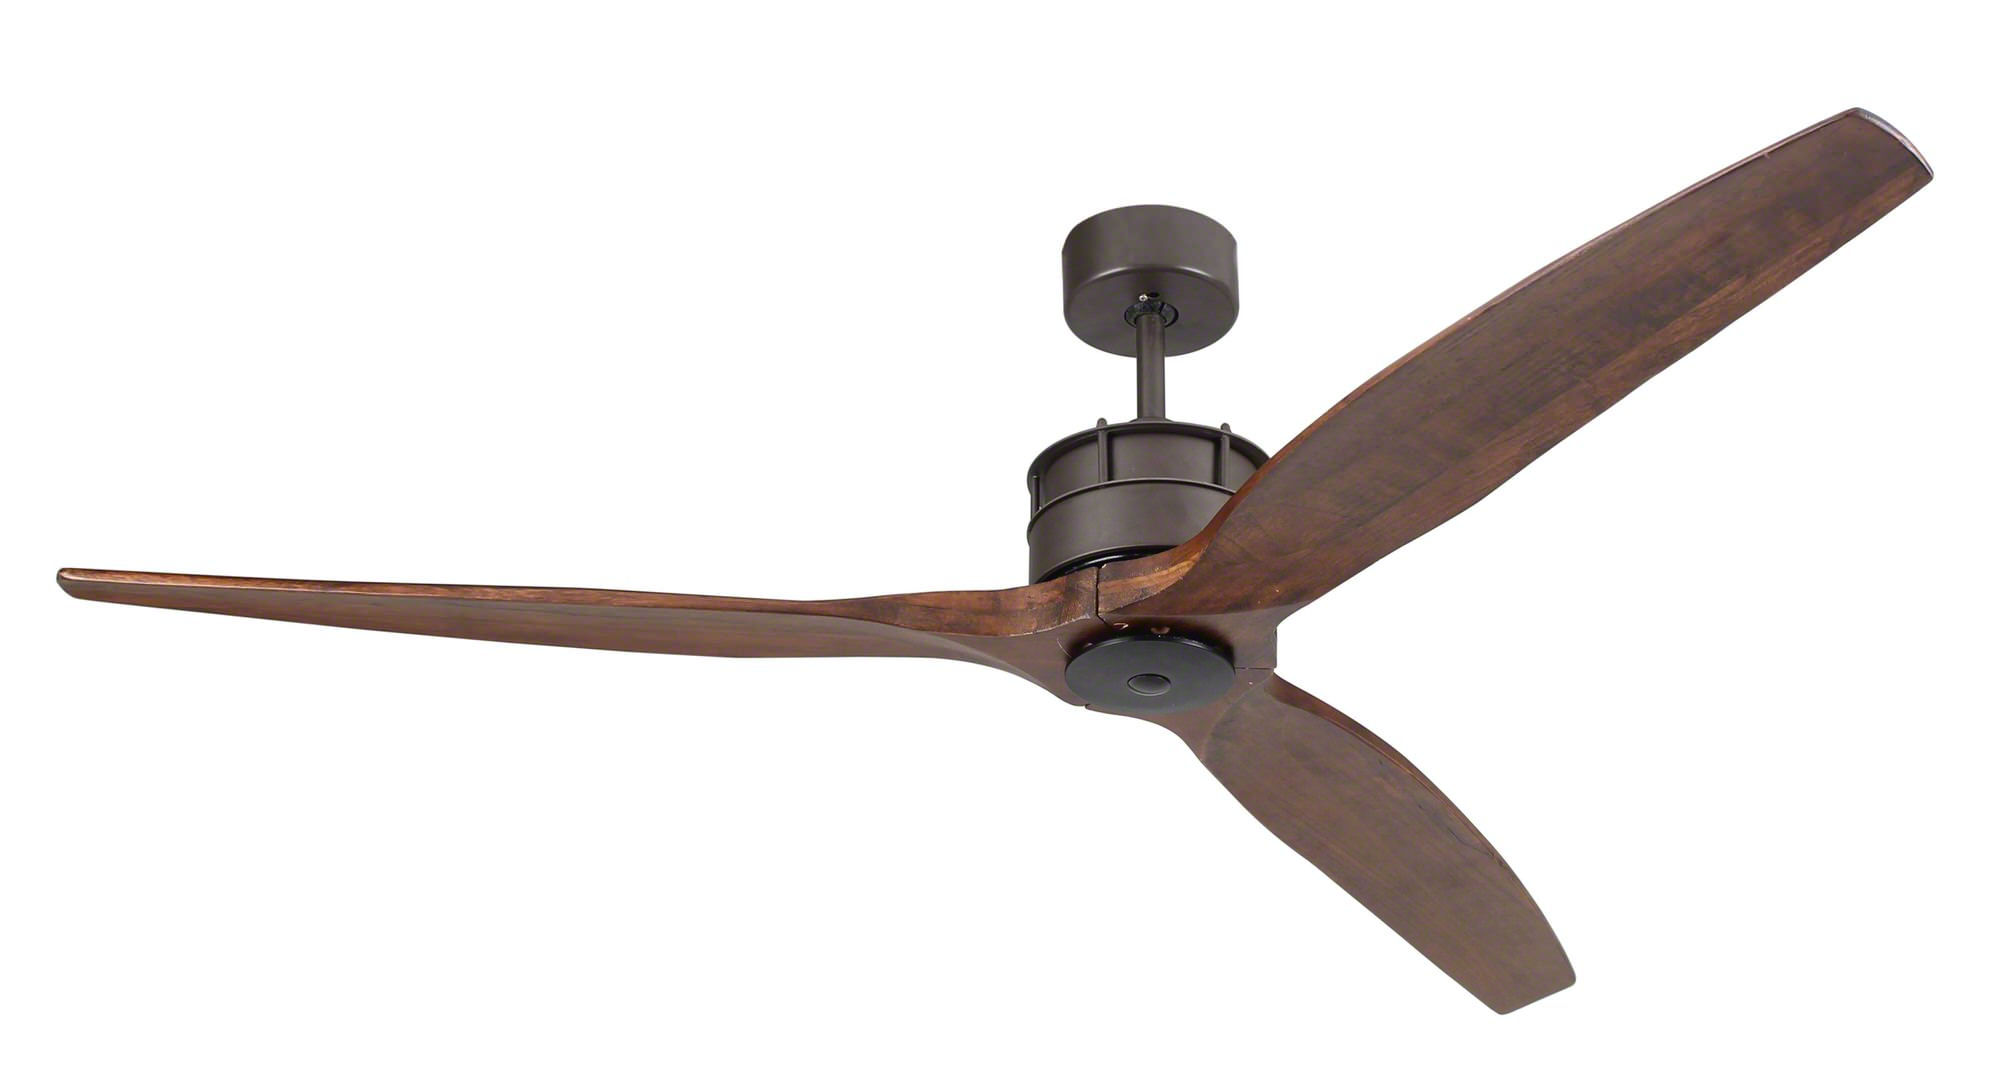 ... Ceiling Fan|Conservatory Ceiling Fan|Fan Remote Control|Lucci Fan